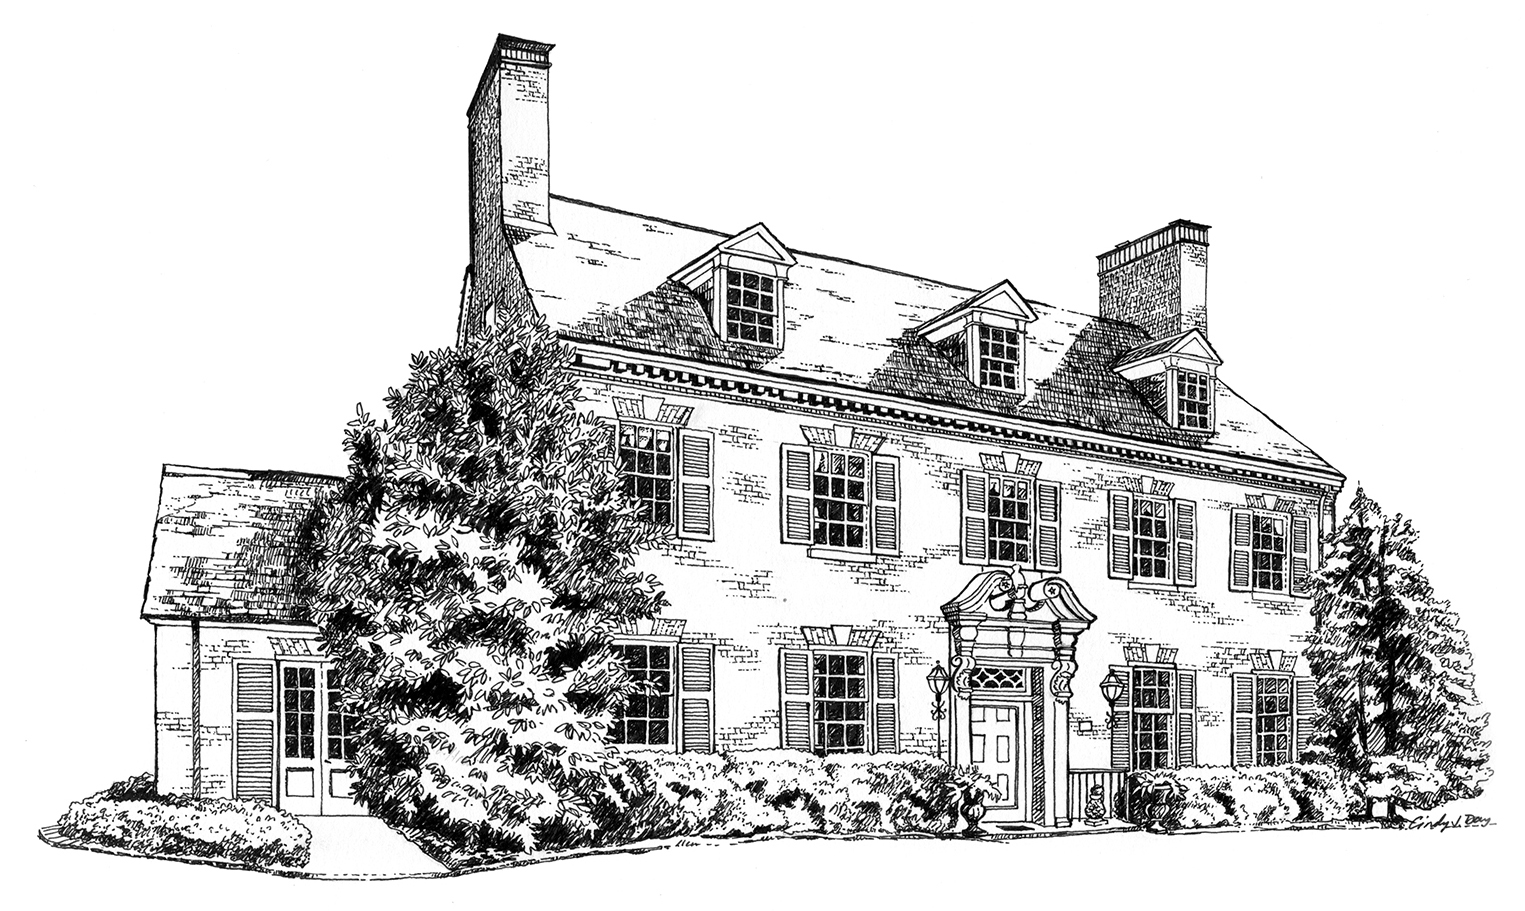 Pen and Ink House Illustration